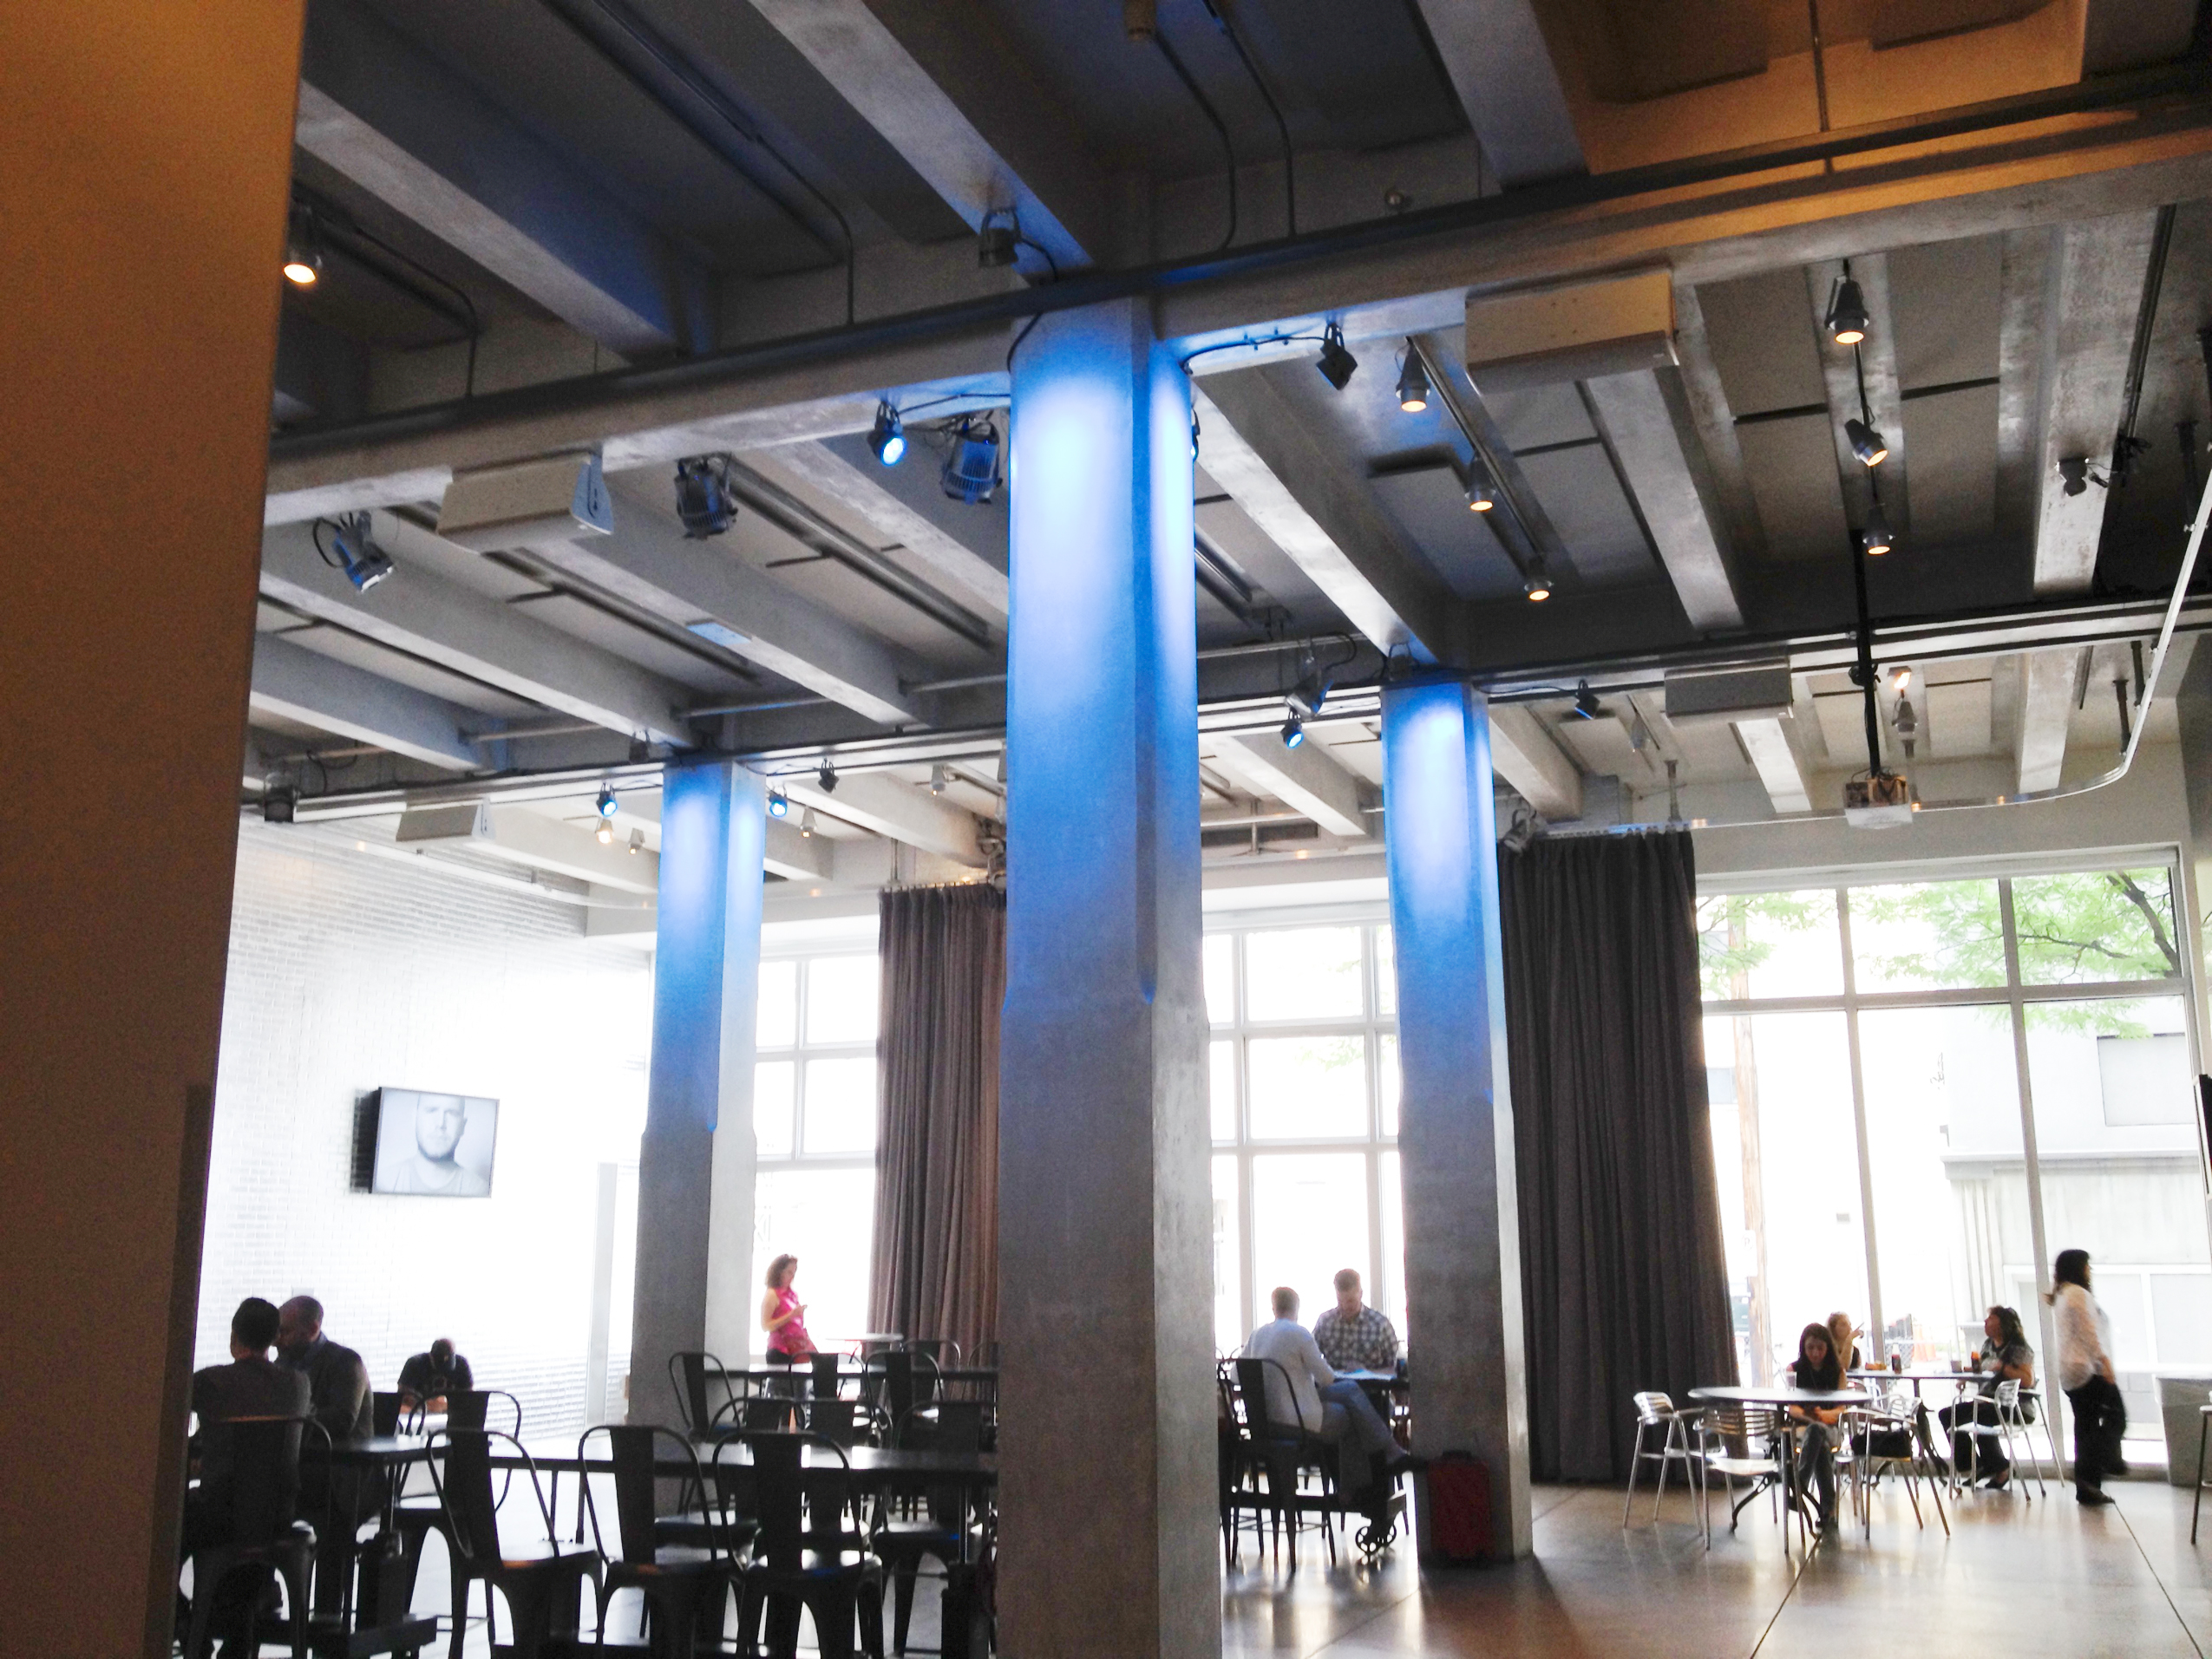 WarholGreenWorkplace1 The first floor of the Andy Warhol Museum in the North Side was re-lamped with 150 energy efficient 18-watt LED bulbs, replacing 90-watt halogen bulbs.